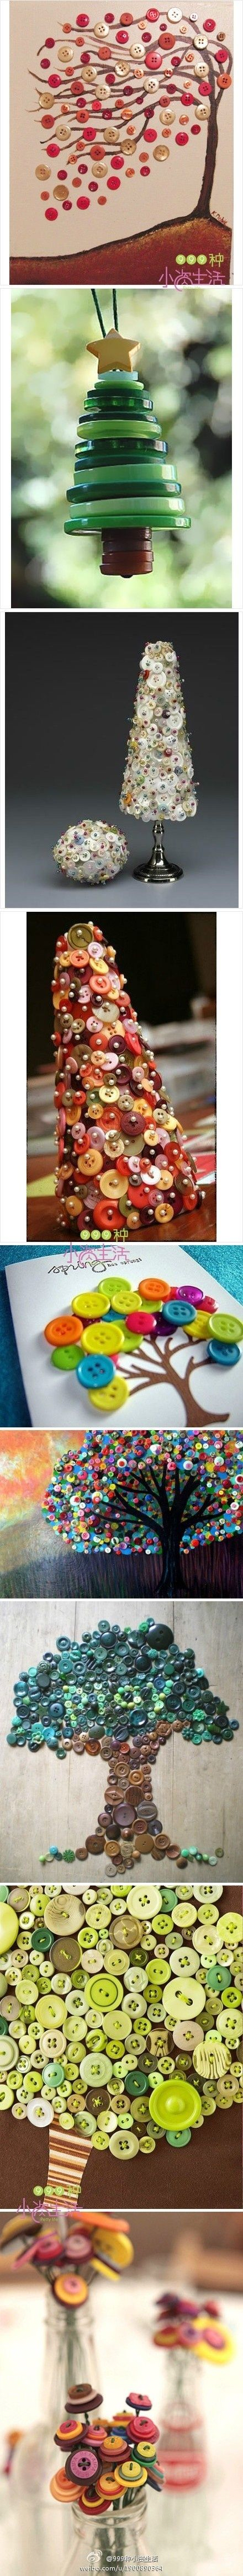 So many Button crafts! - Click image to find more DIY & Crafts Pinterest pins